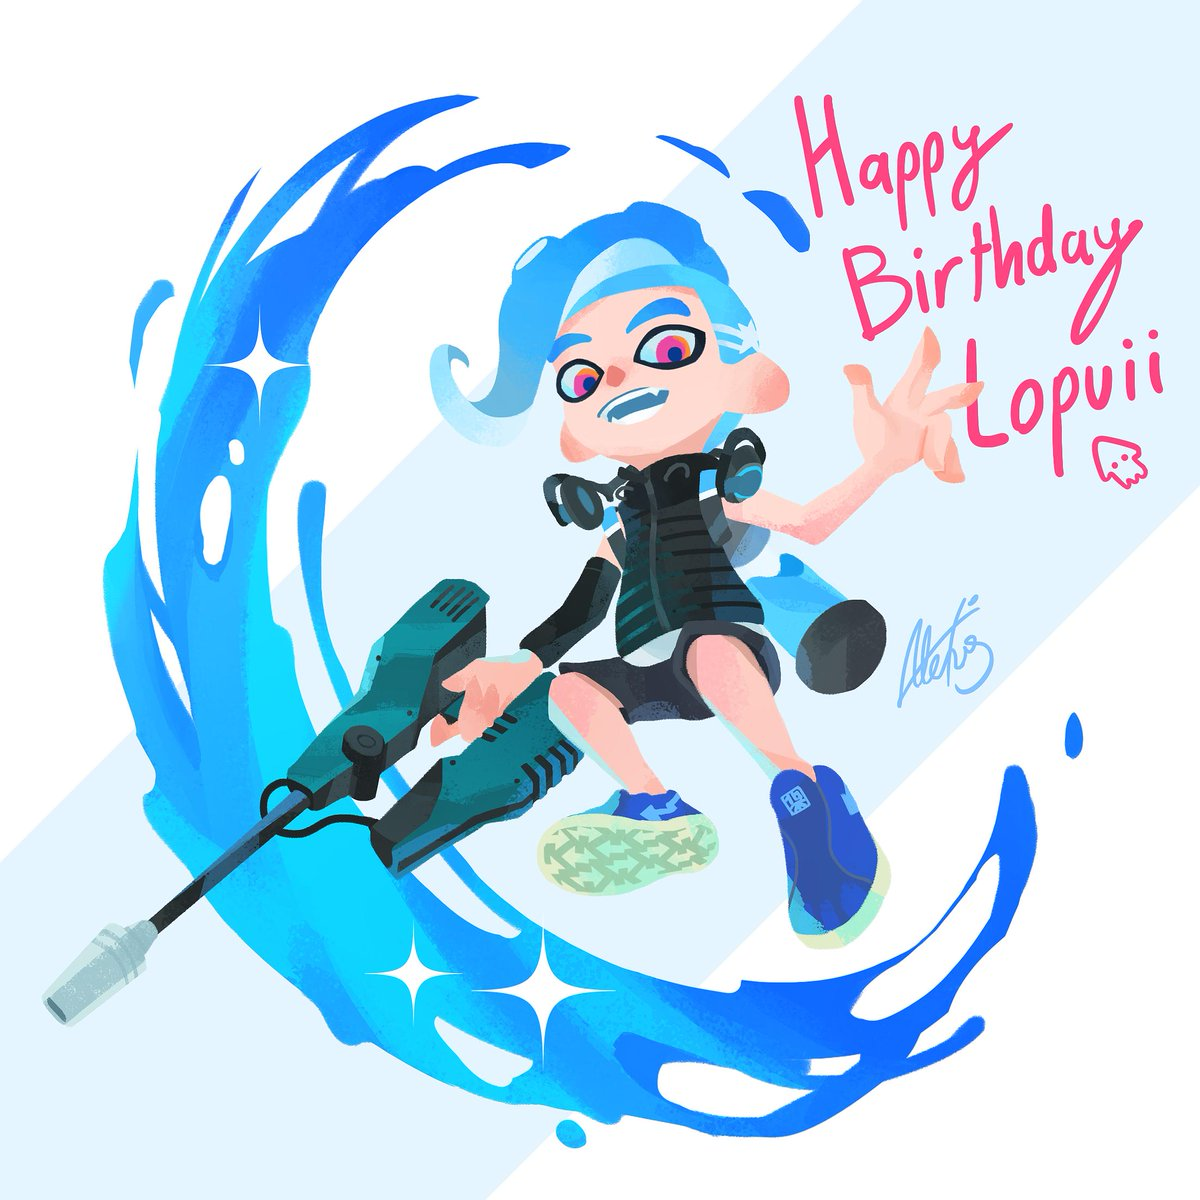 It&#39;s a special day for a special someone! @LopuiiArt HAPPY BIRTHDAY #Splatoon #Splatoon2 #スプラトゥーン #スプラトゥーン2<br>http://pic.twitter.com/HAWQFUiMB3